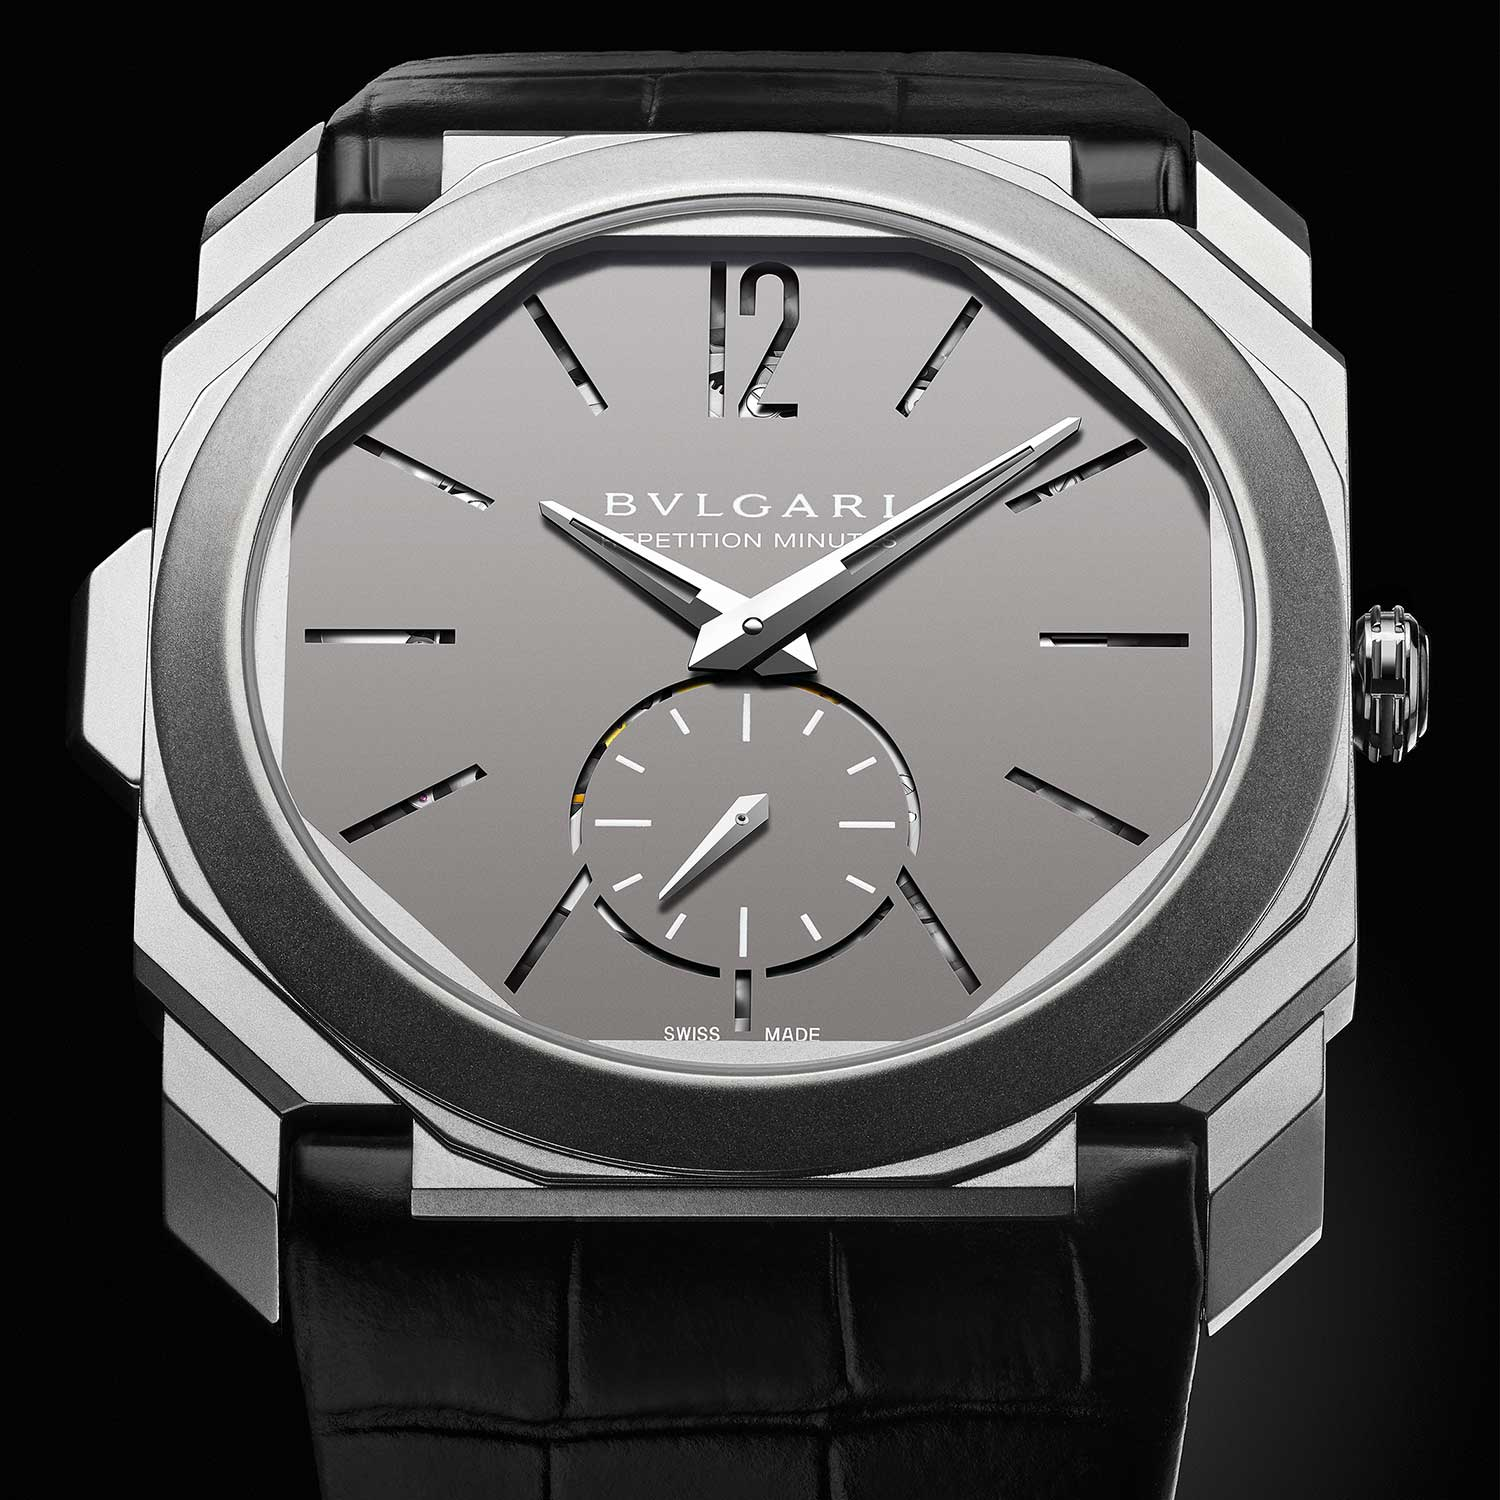 2016: Octo Finissimo Minute Repeater Bvlgari unveils the Octo Finissimo Minute Repeater in a titanium case, featuring the ultra-thin 3.12mm BVL 362 movement. A bold design, featuring cut-out dial markers that enabled the sound to pass through from the back of the movement, thus amplifying the volume of the chimes.